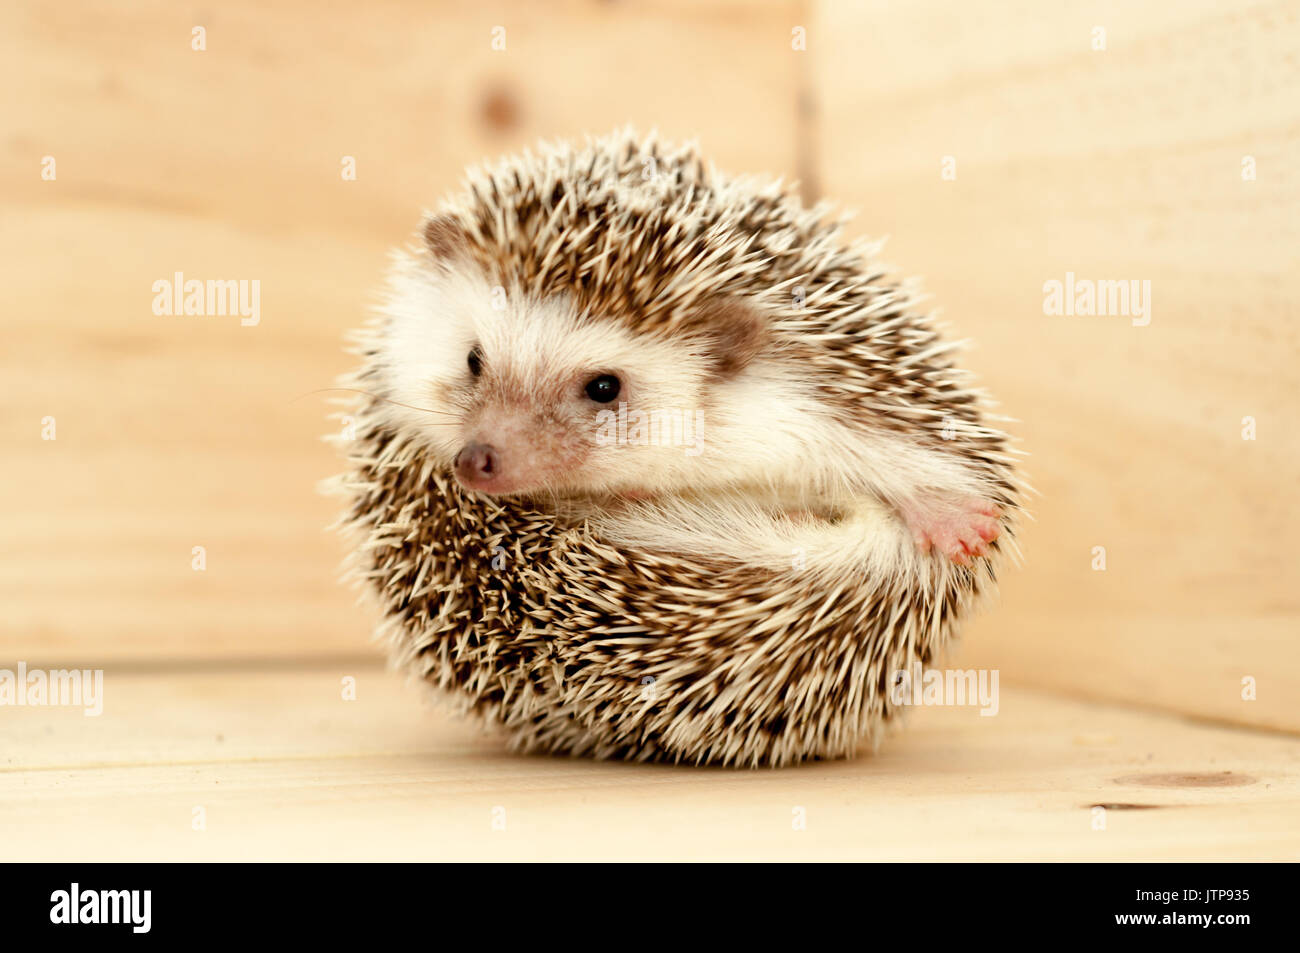 Hedgehog's various movements on wooden background - Stock Image